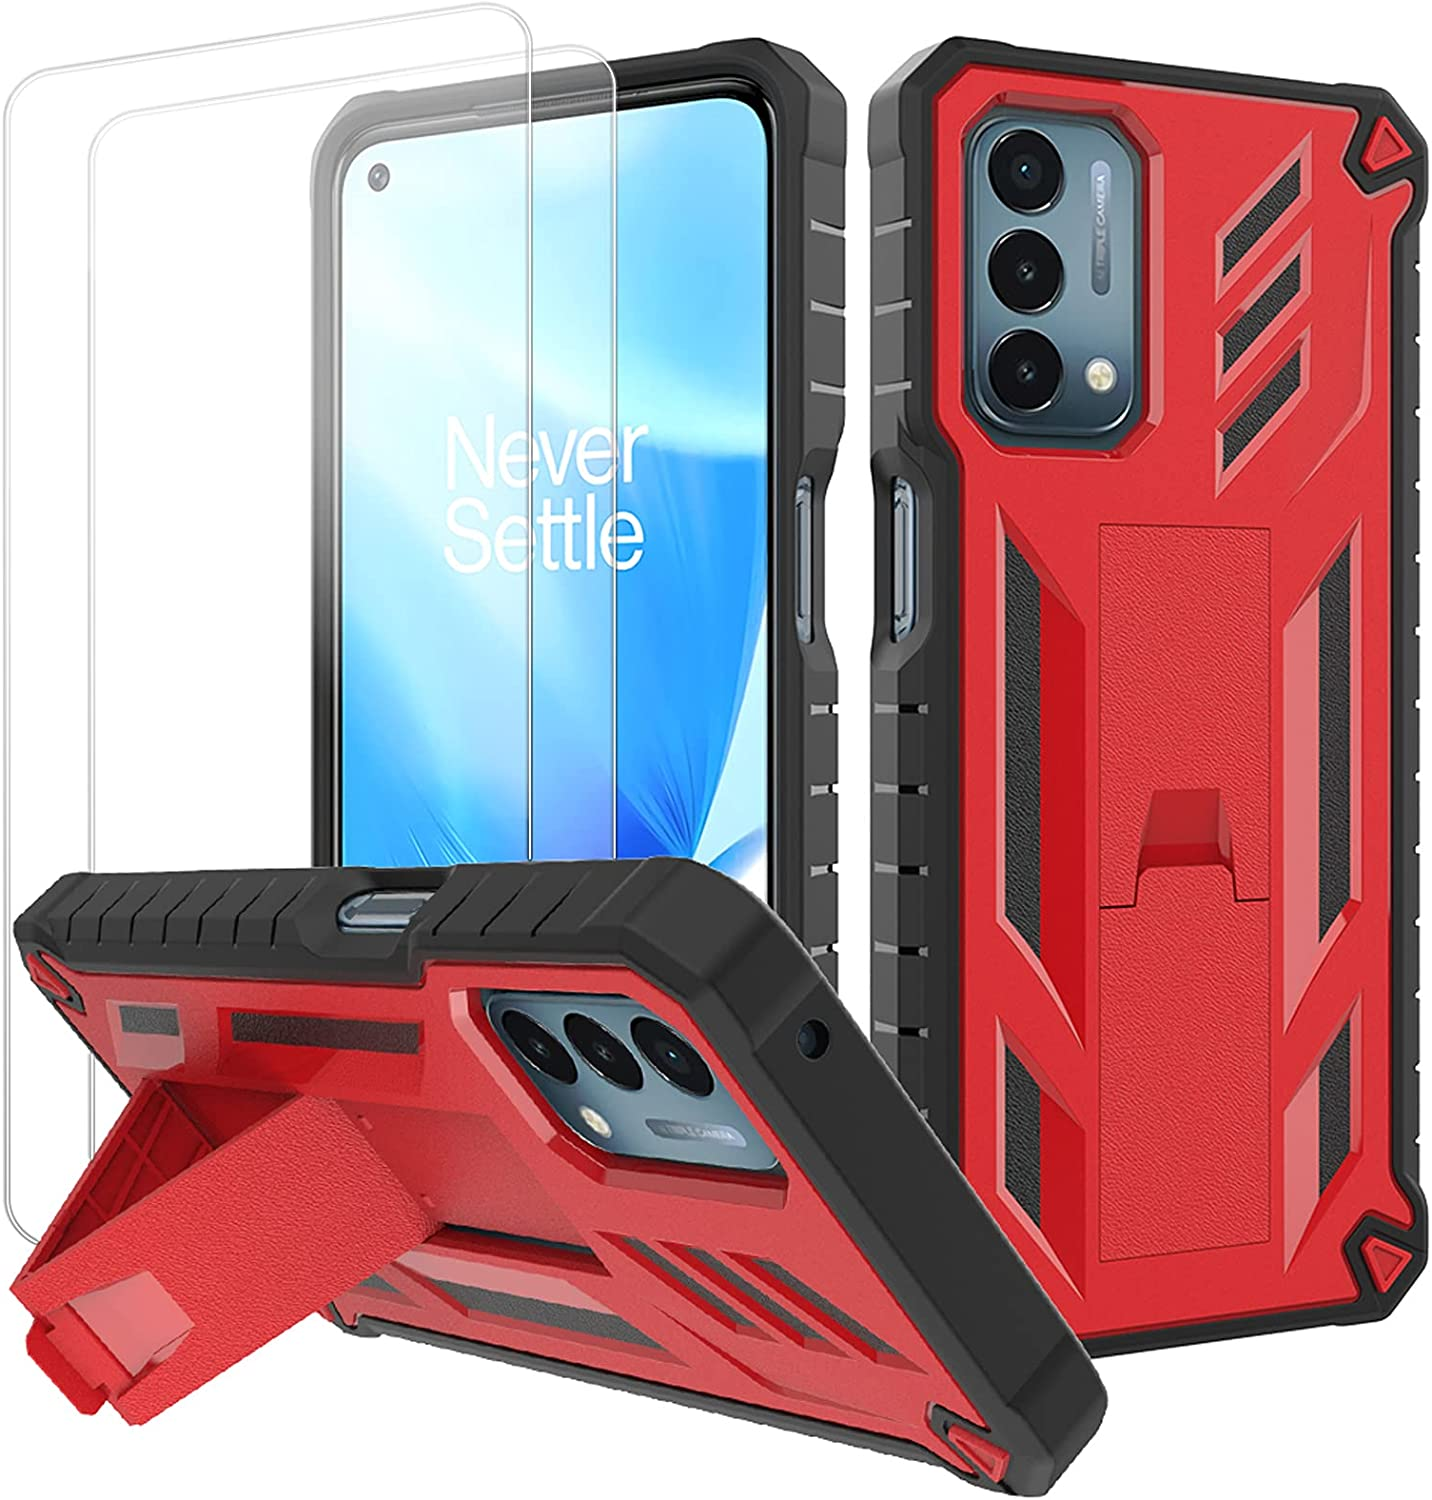 Stand Case for OnePlus Nord N200 with 2 Pack Protector Screen 5G Year-end annual account Boston Mall